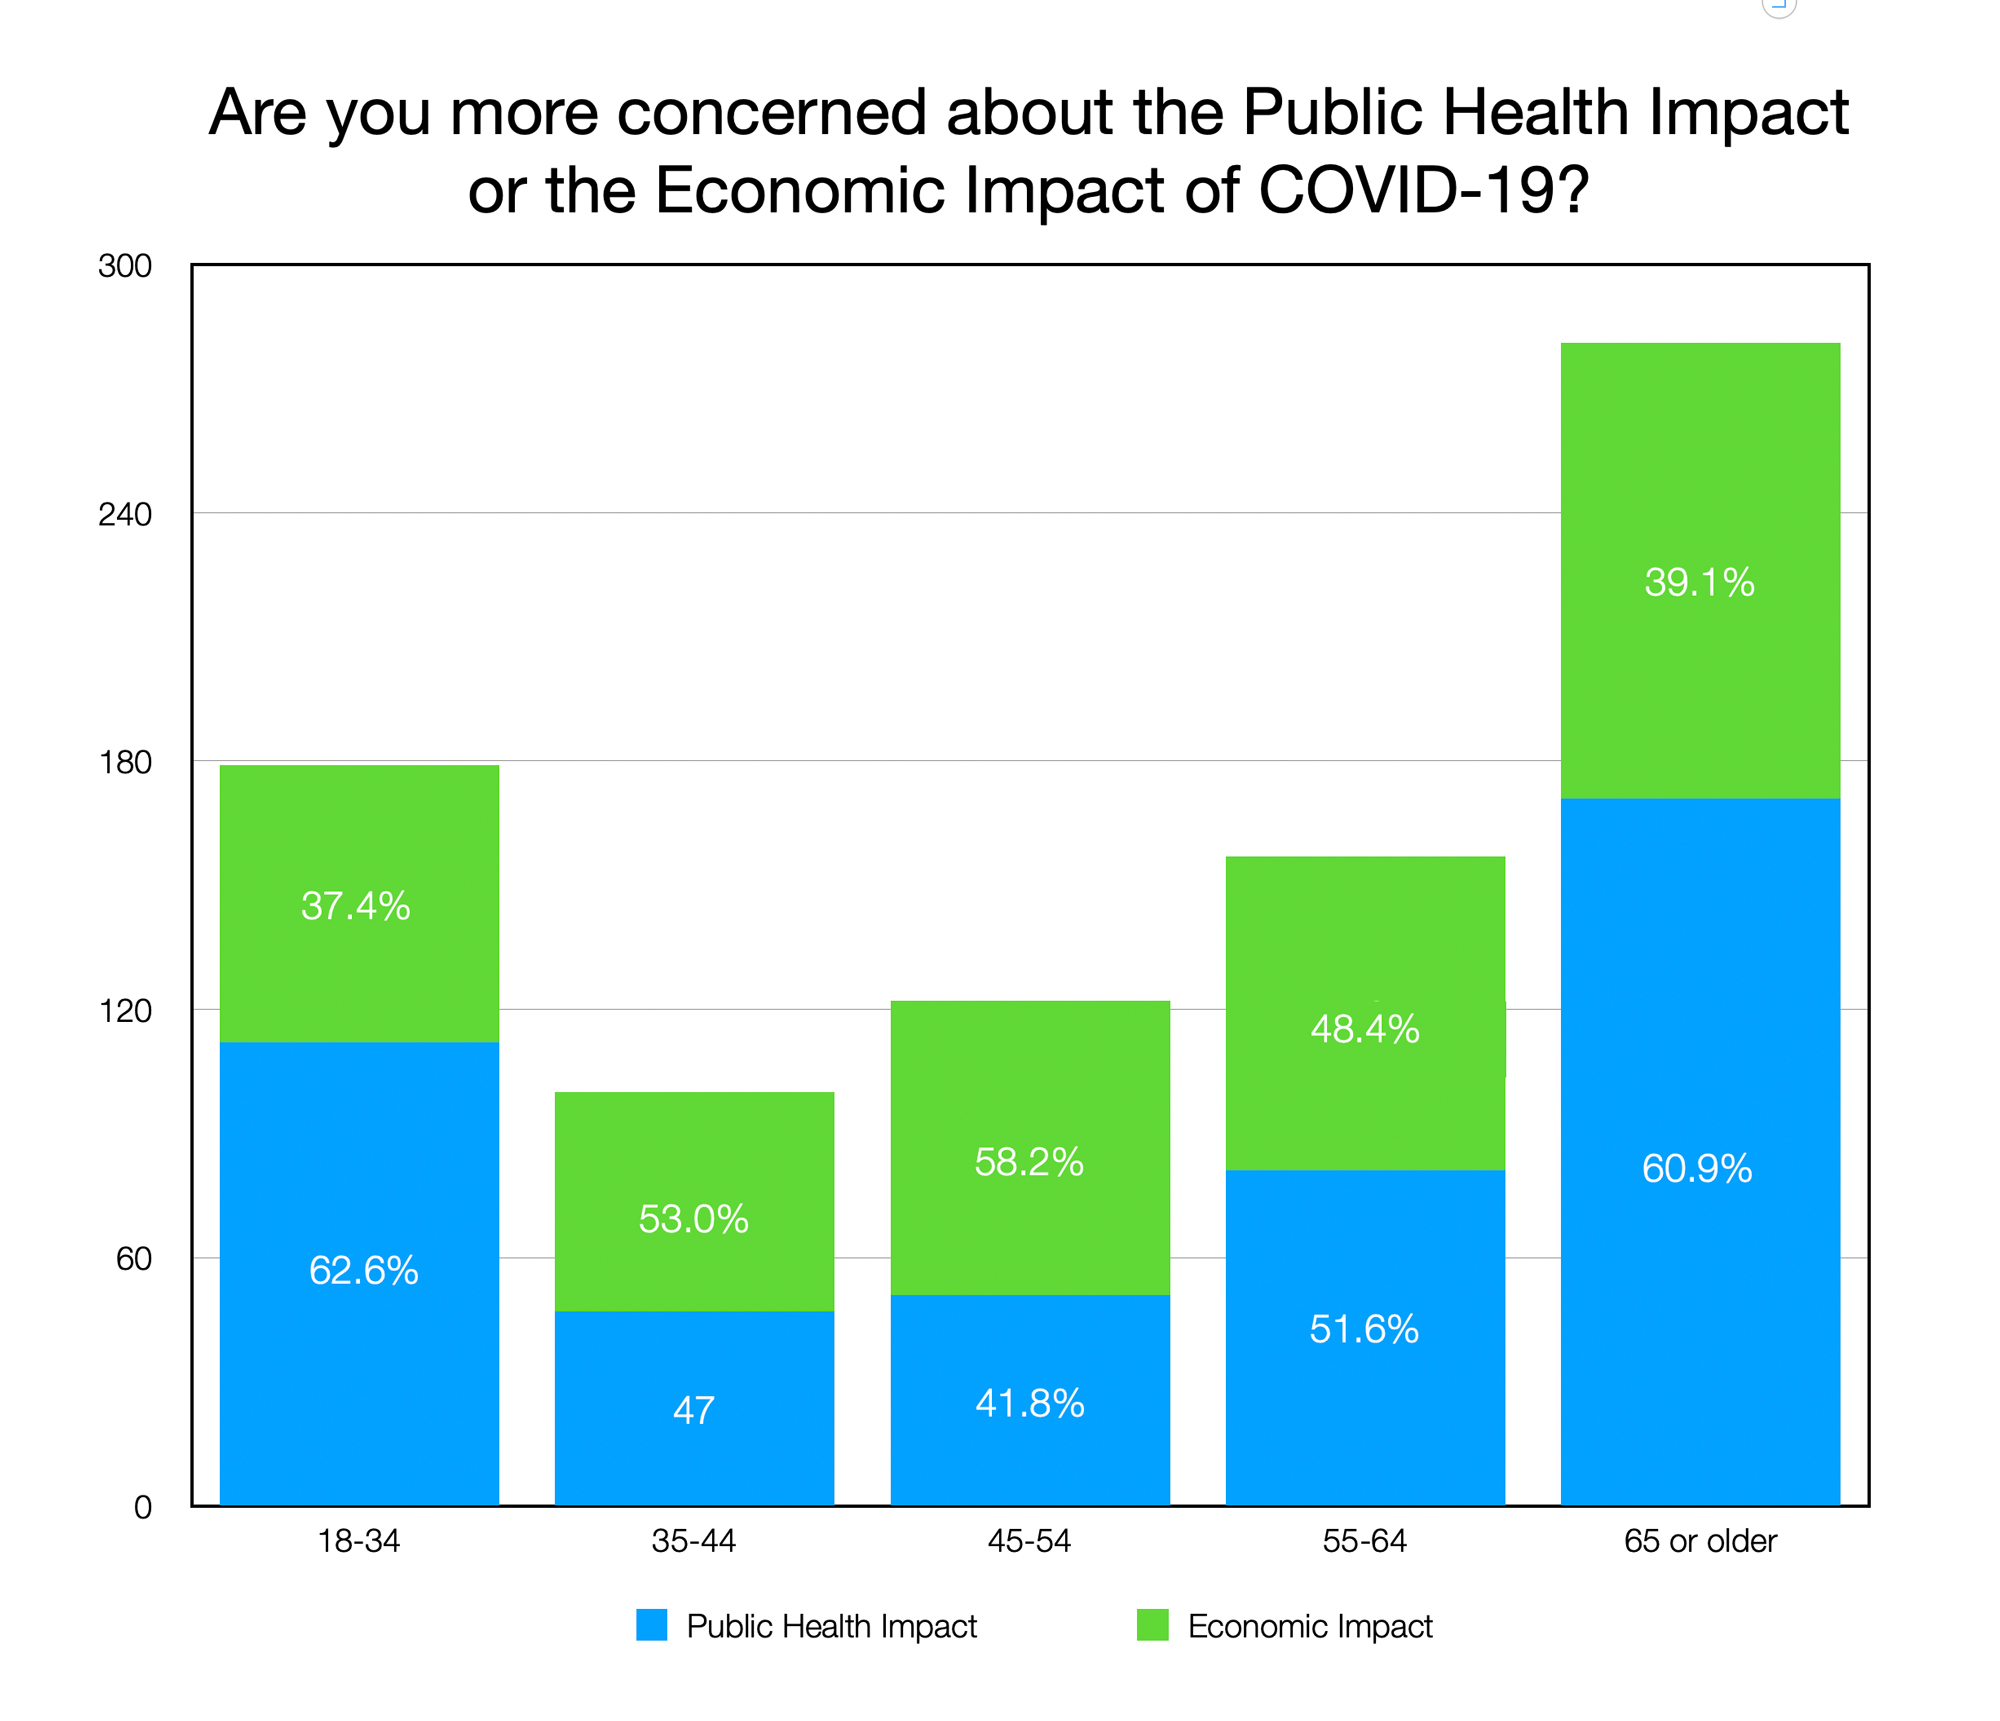 GRAPH: are you more concerned about the Public Health Impactor the Economic Impact of COVID-19? (By Age Group)